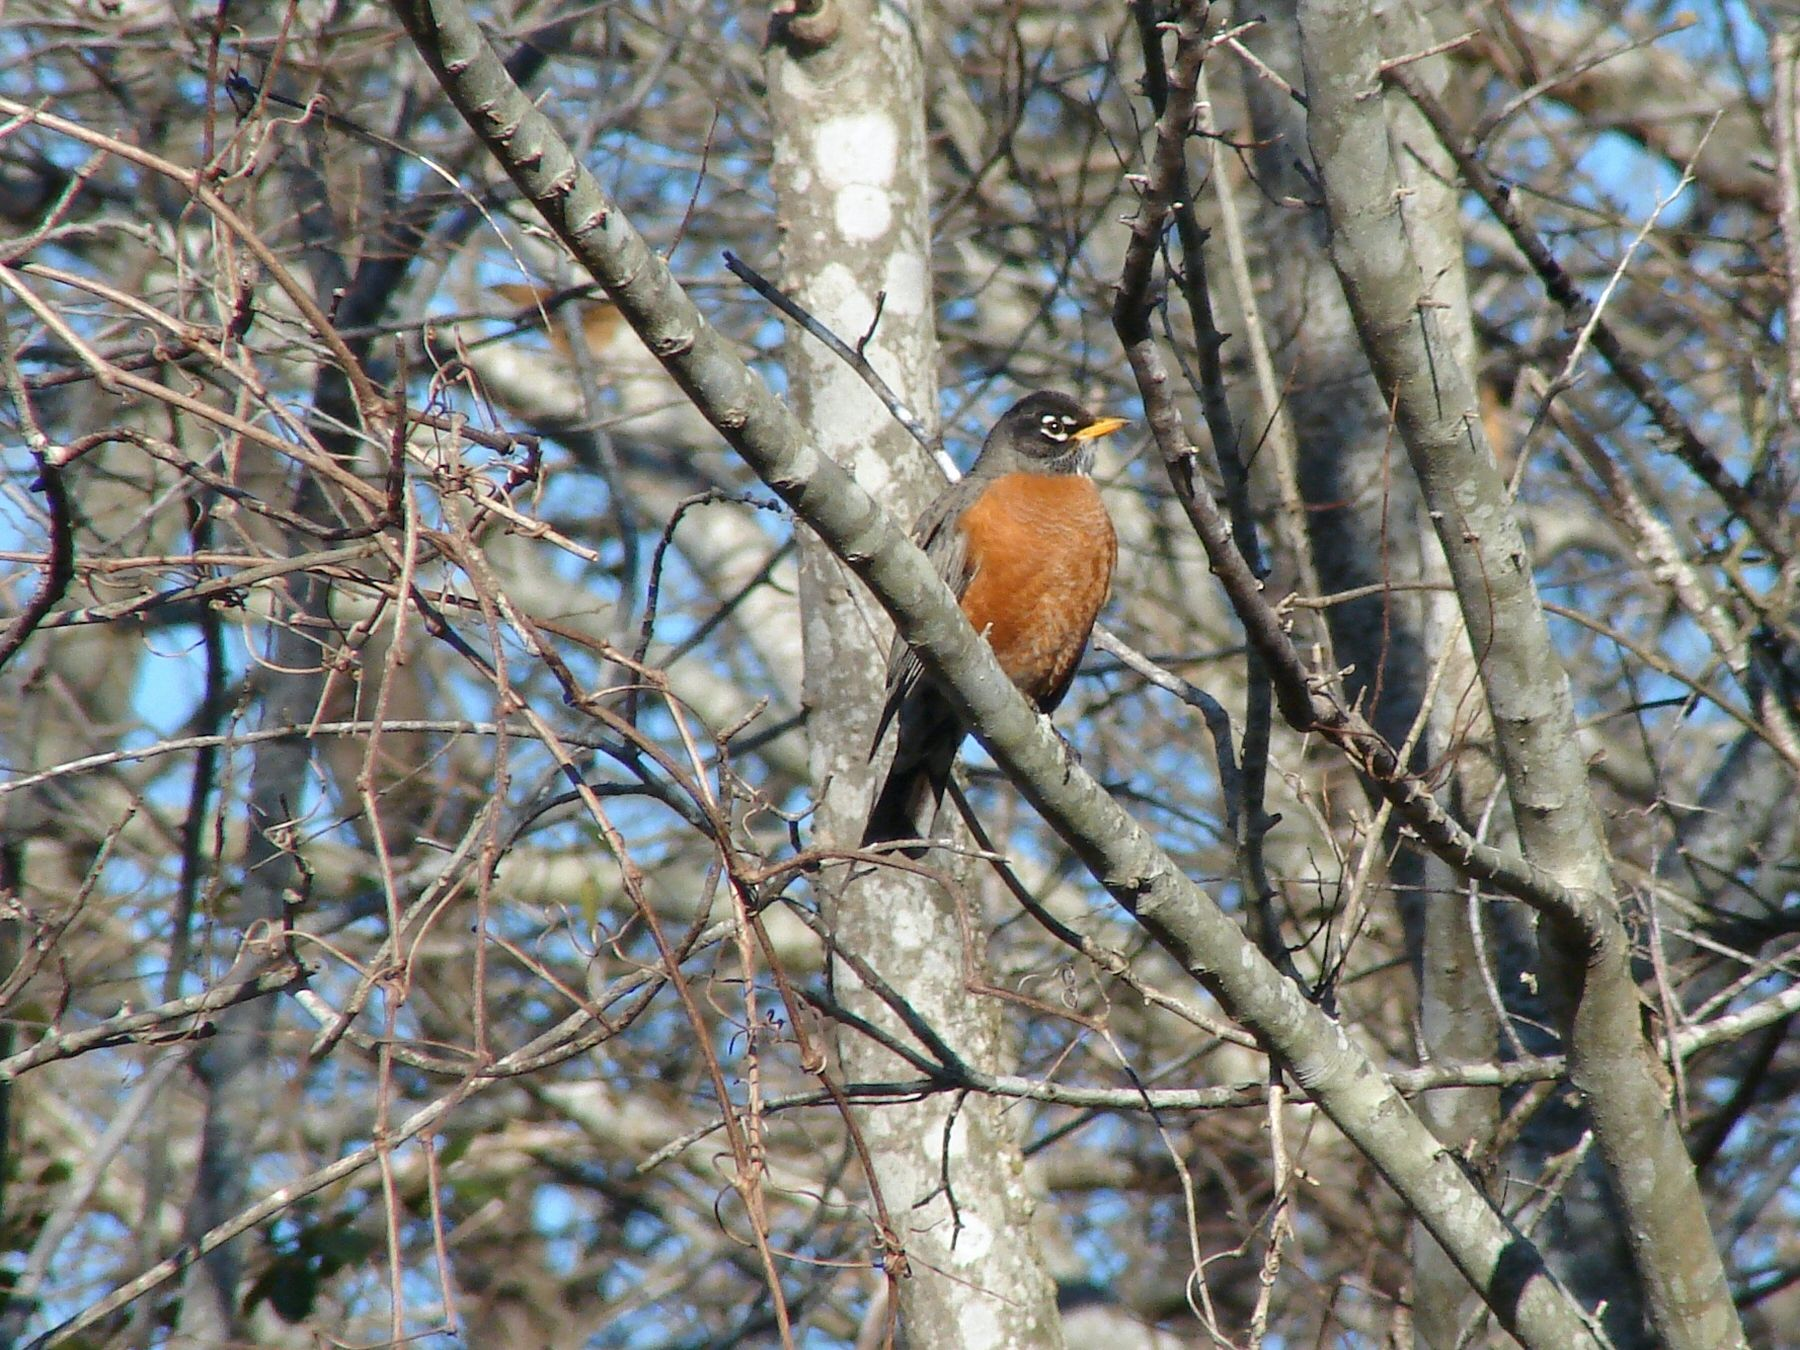 The American Robin was the 6th most spotted bird in the ...